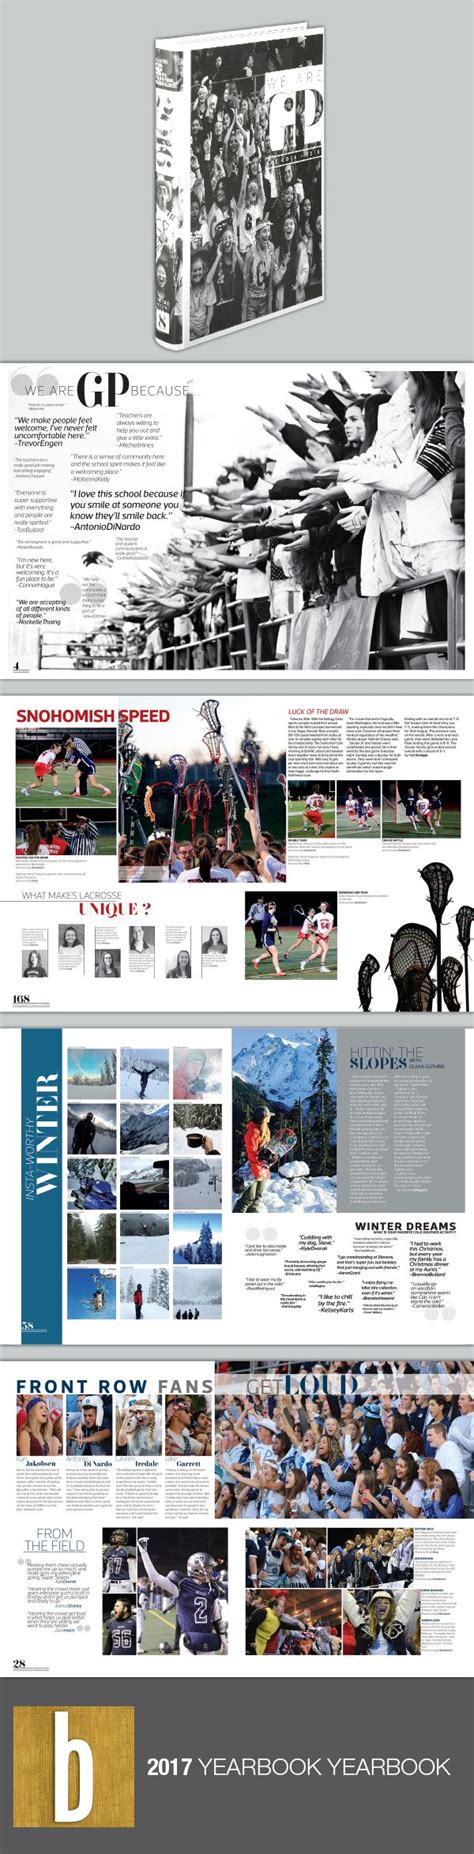 yearbook layout design rules 729 best yearbook sponsor images on pinterest yearbook